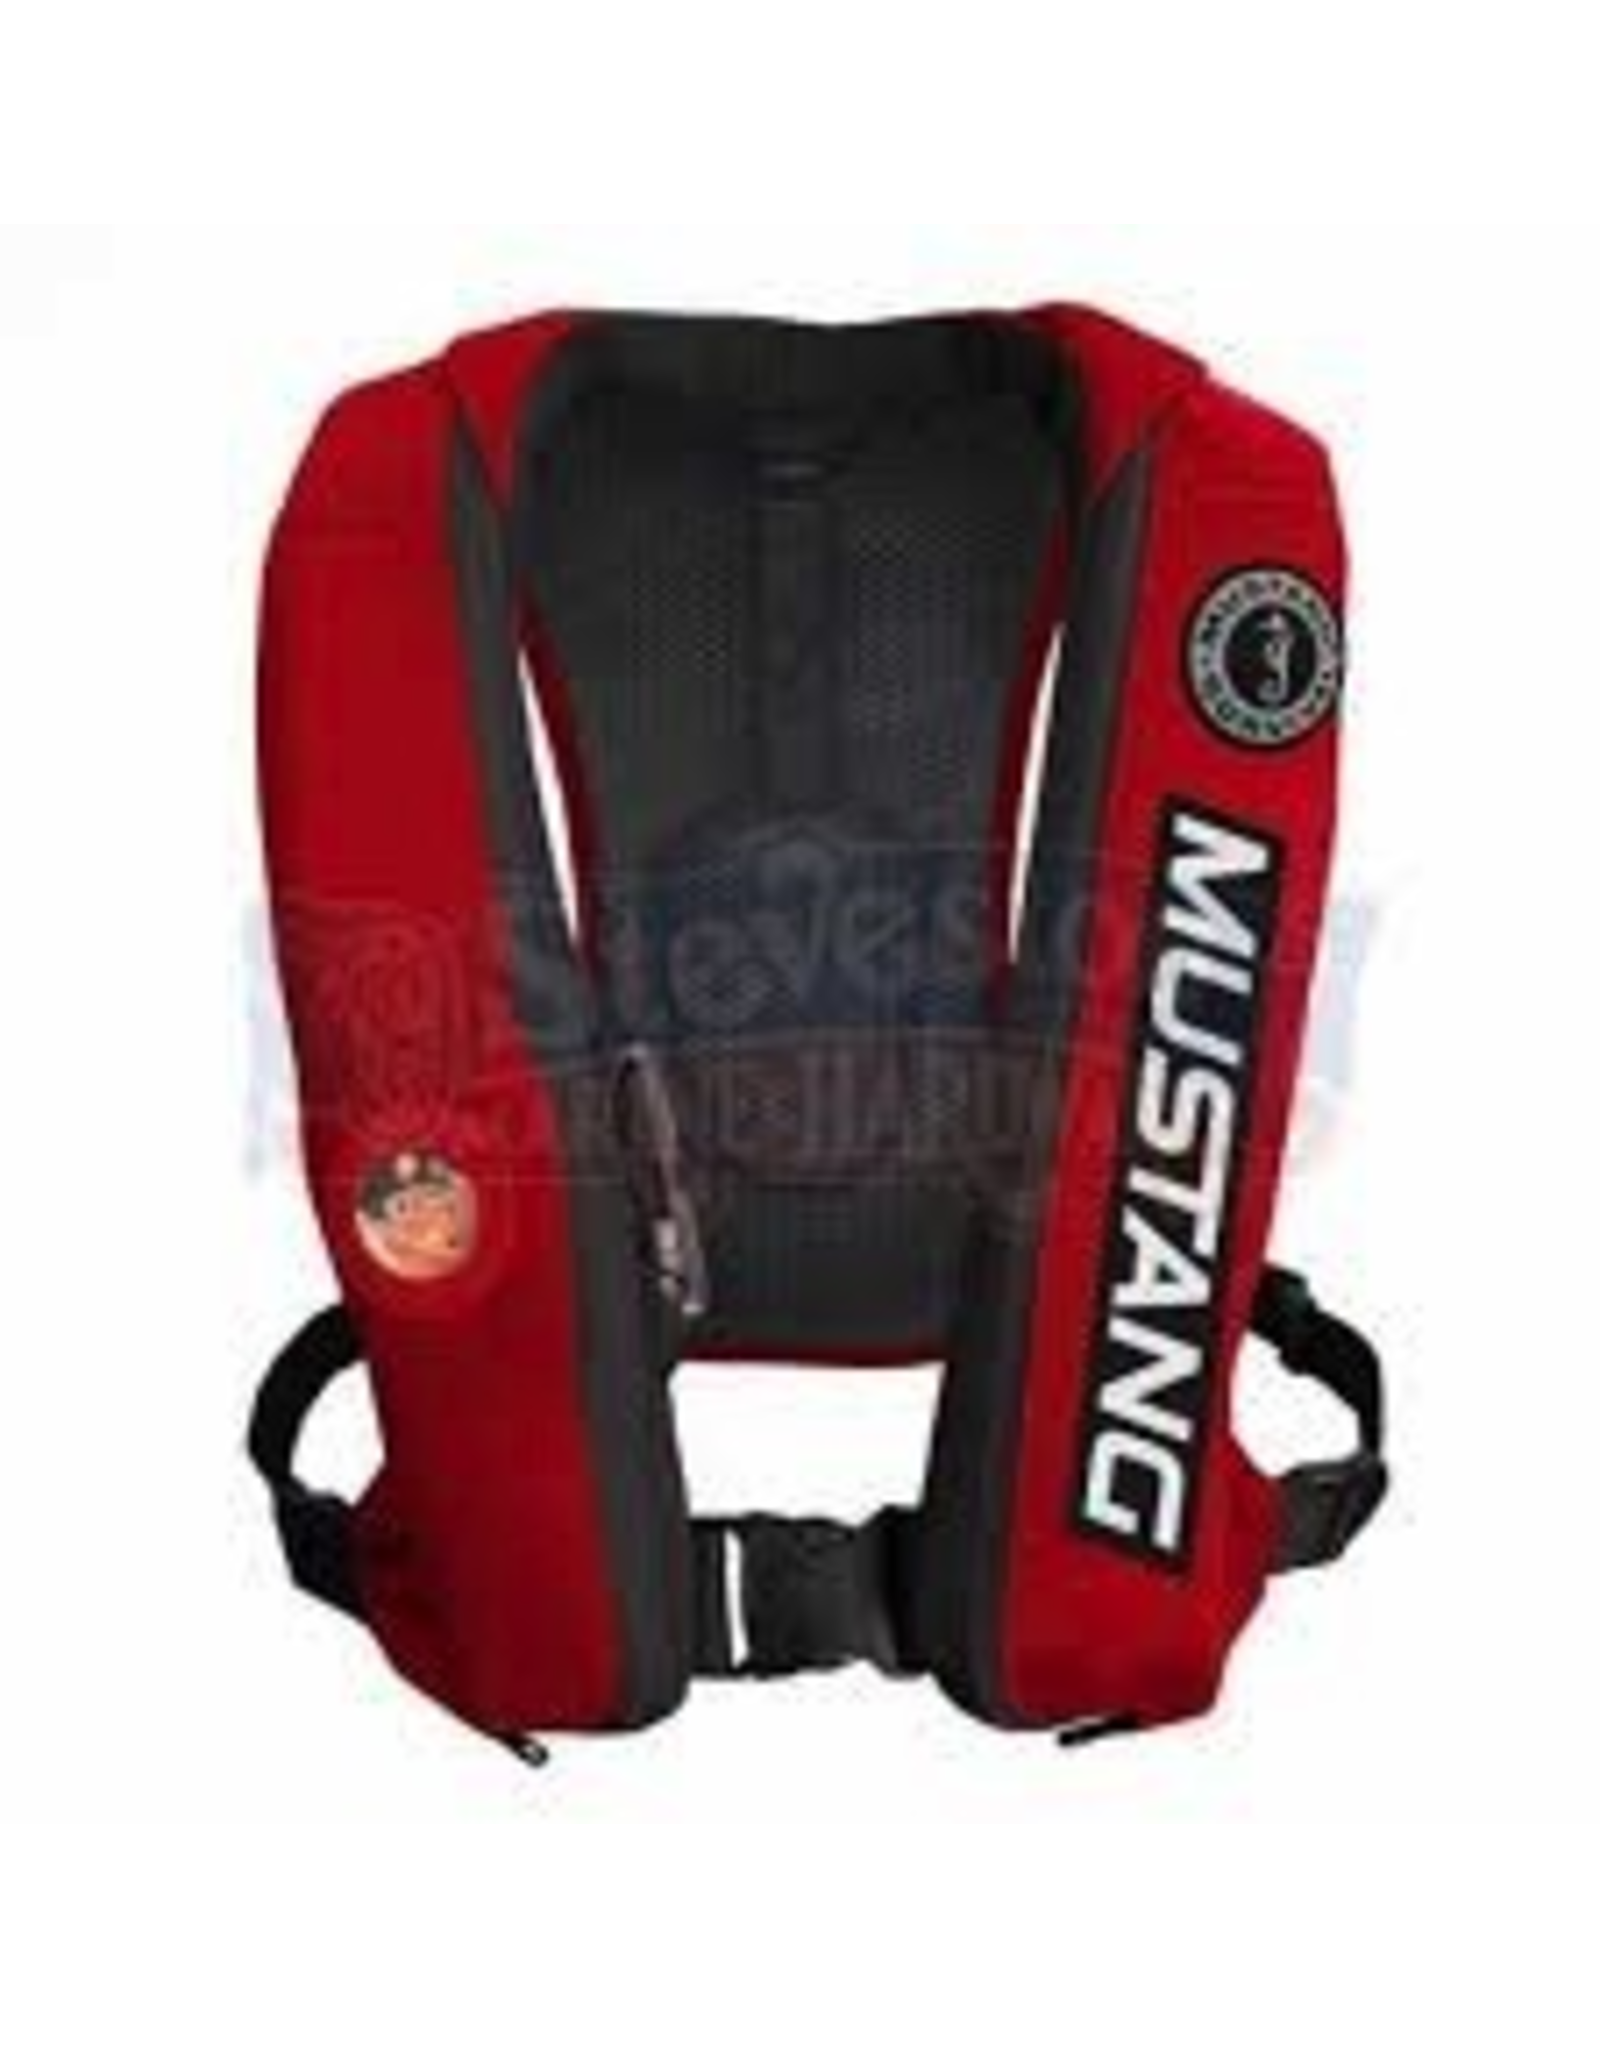 Mustang Survival Mustang Survival Elite Inflatable PFD Life Jacket, Red